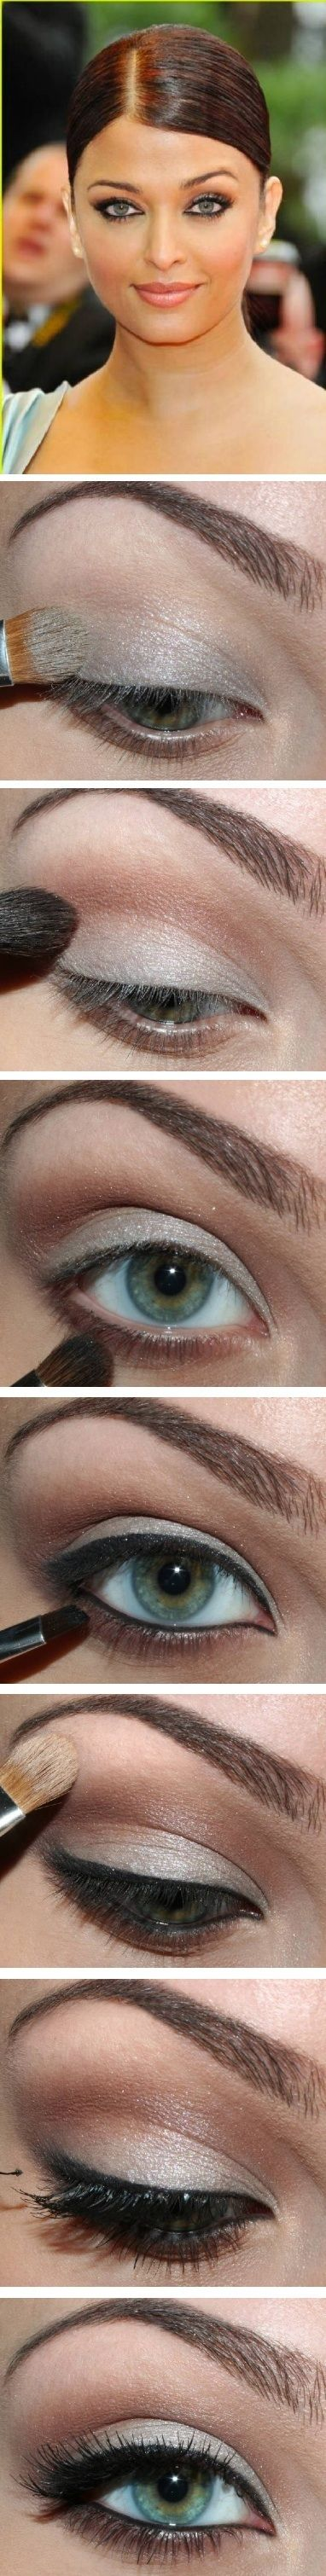 Aishwarya Rai eye makeup #makeup #beauty #cosmetics